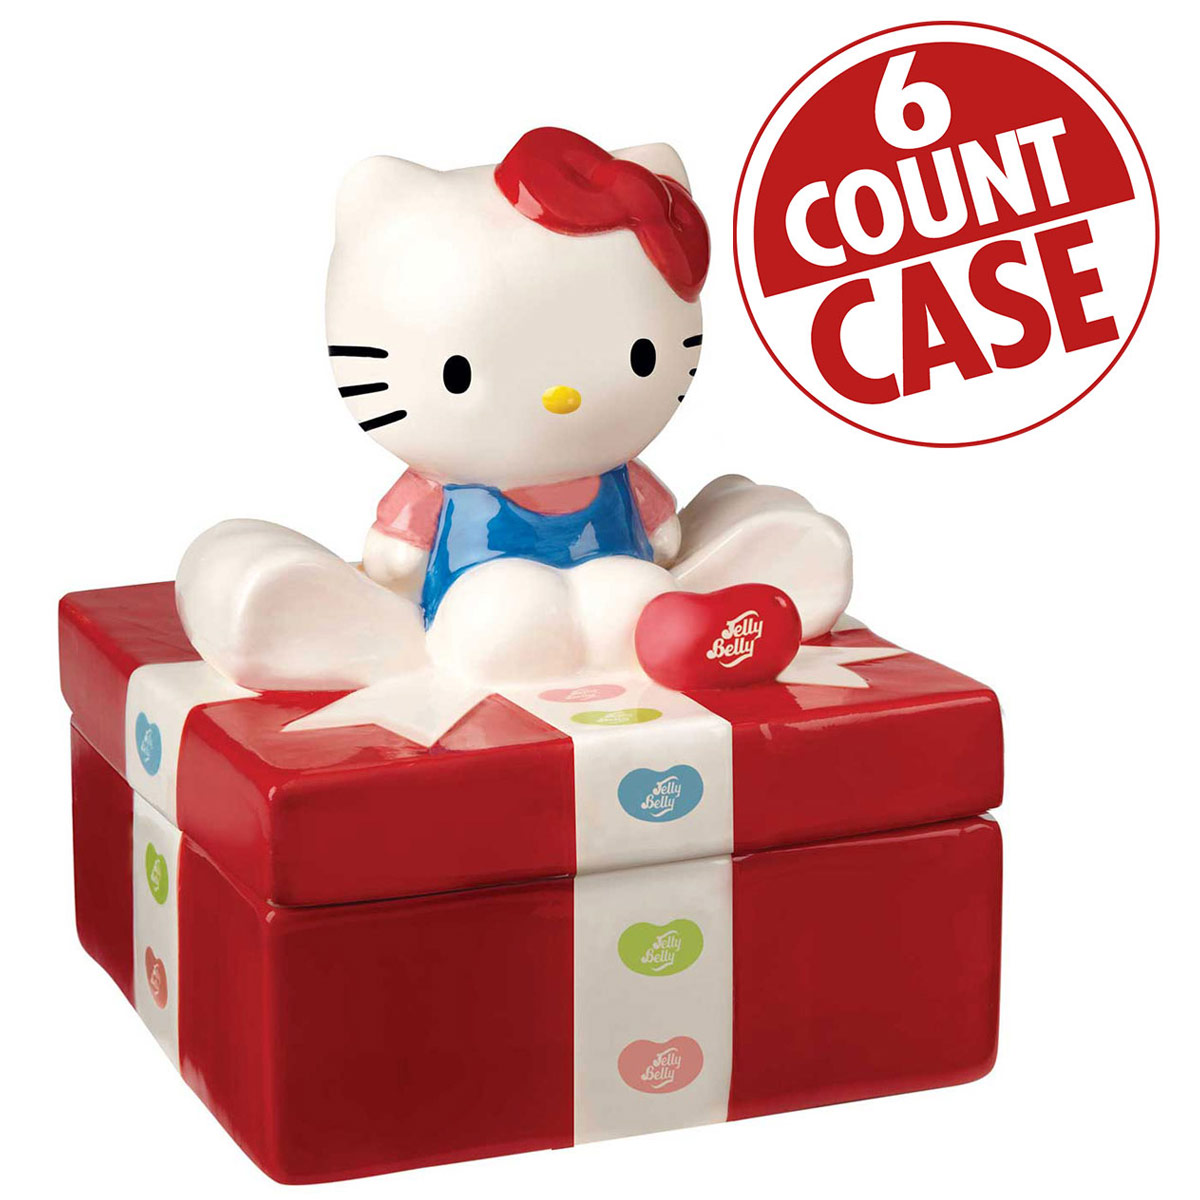 Hello Kitty Candy Dish - 6 Count Case